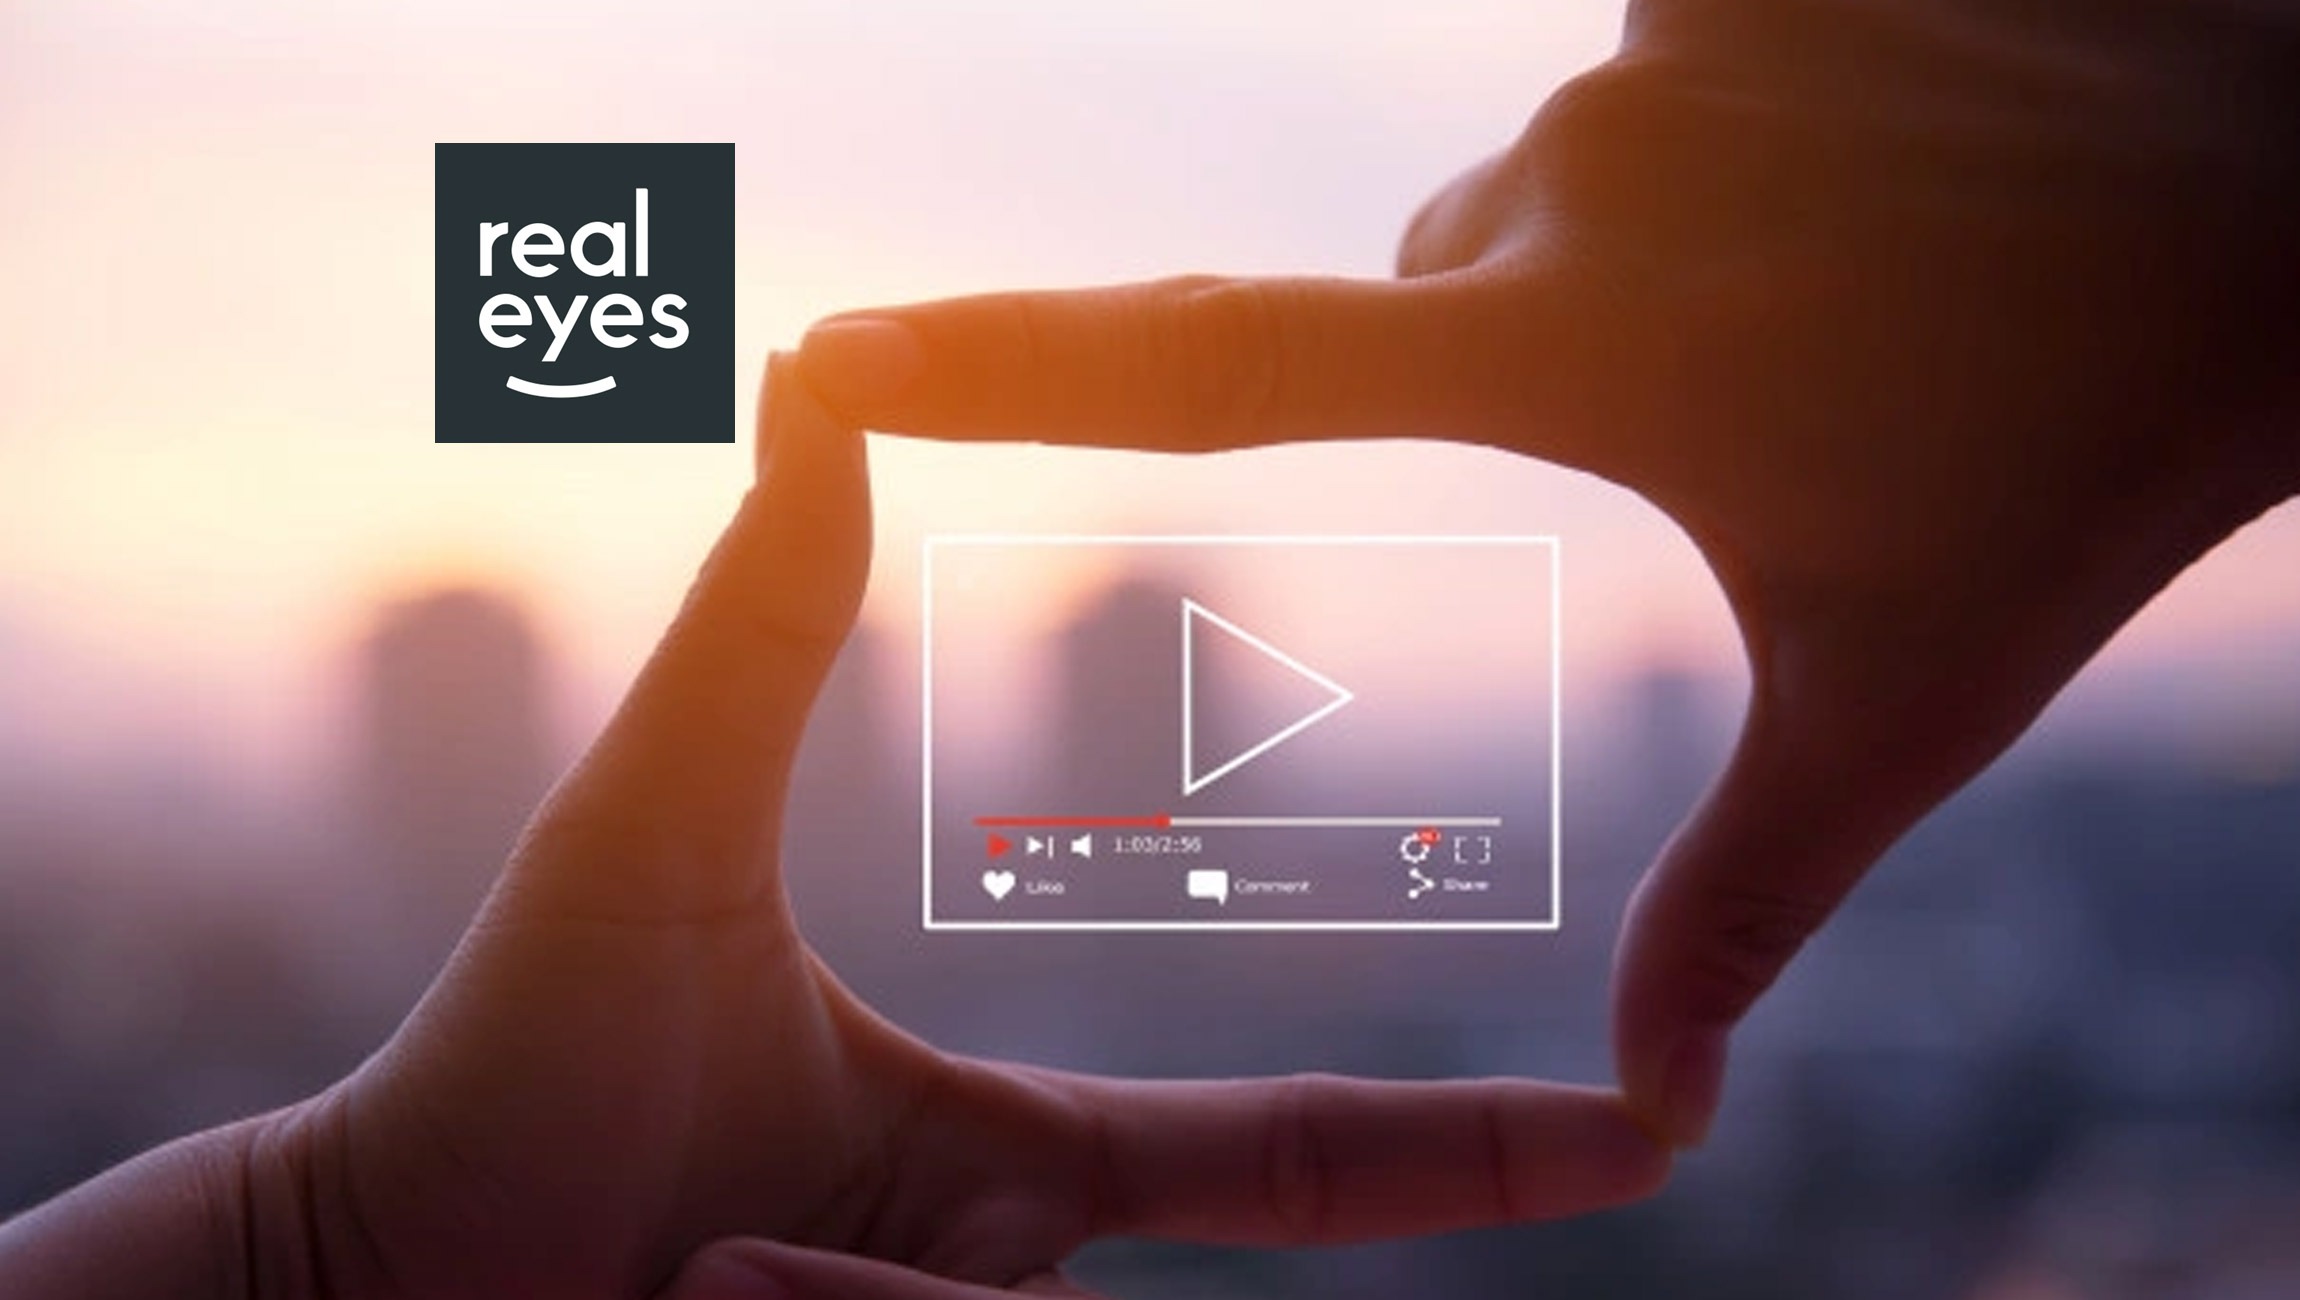 Realeyes Announces Attention Data API for Predicting In-Market Outcomes of Video Advertising 1